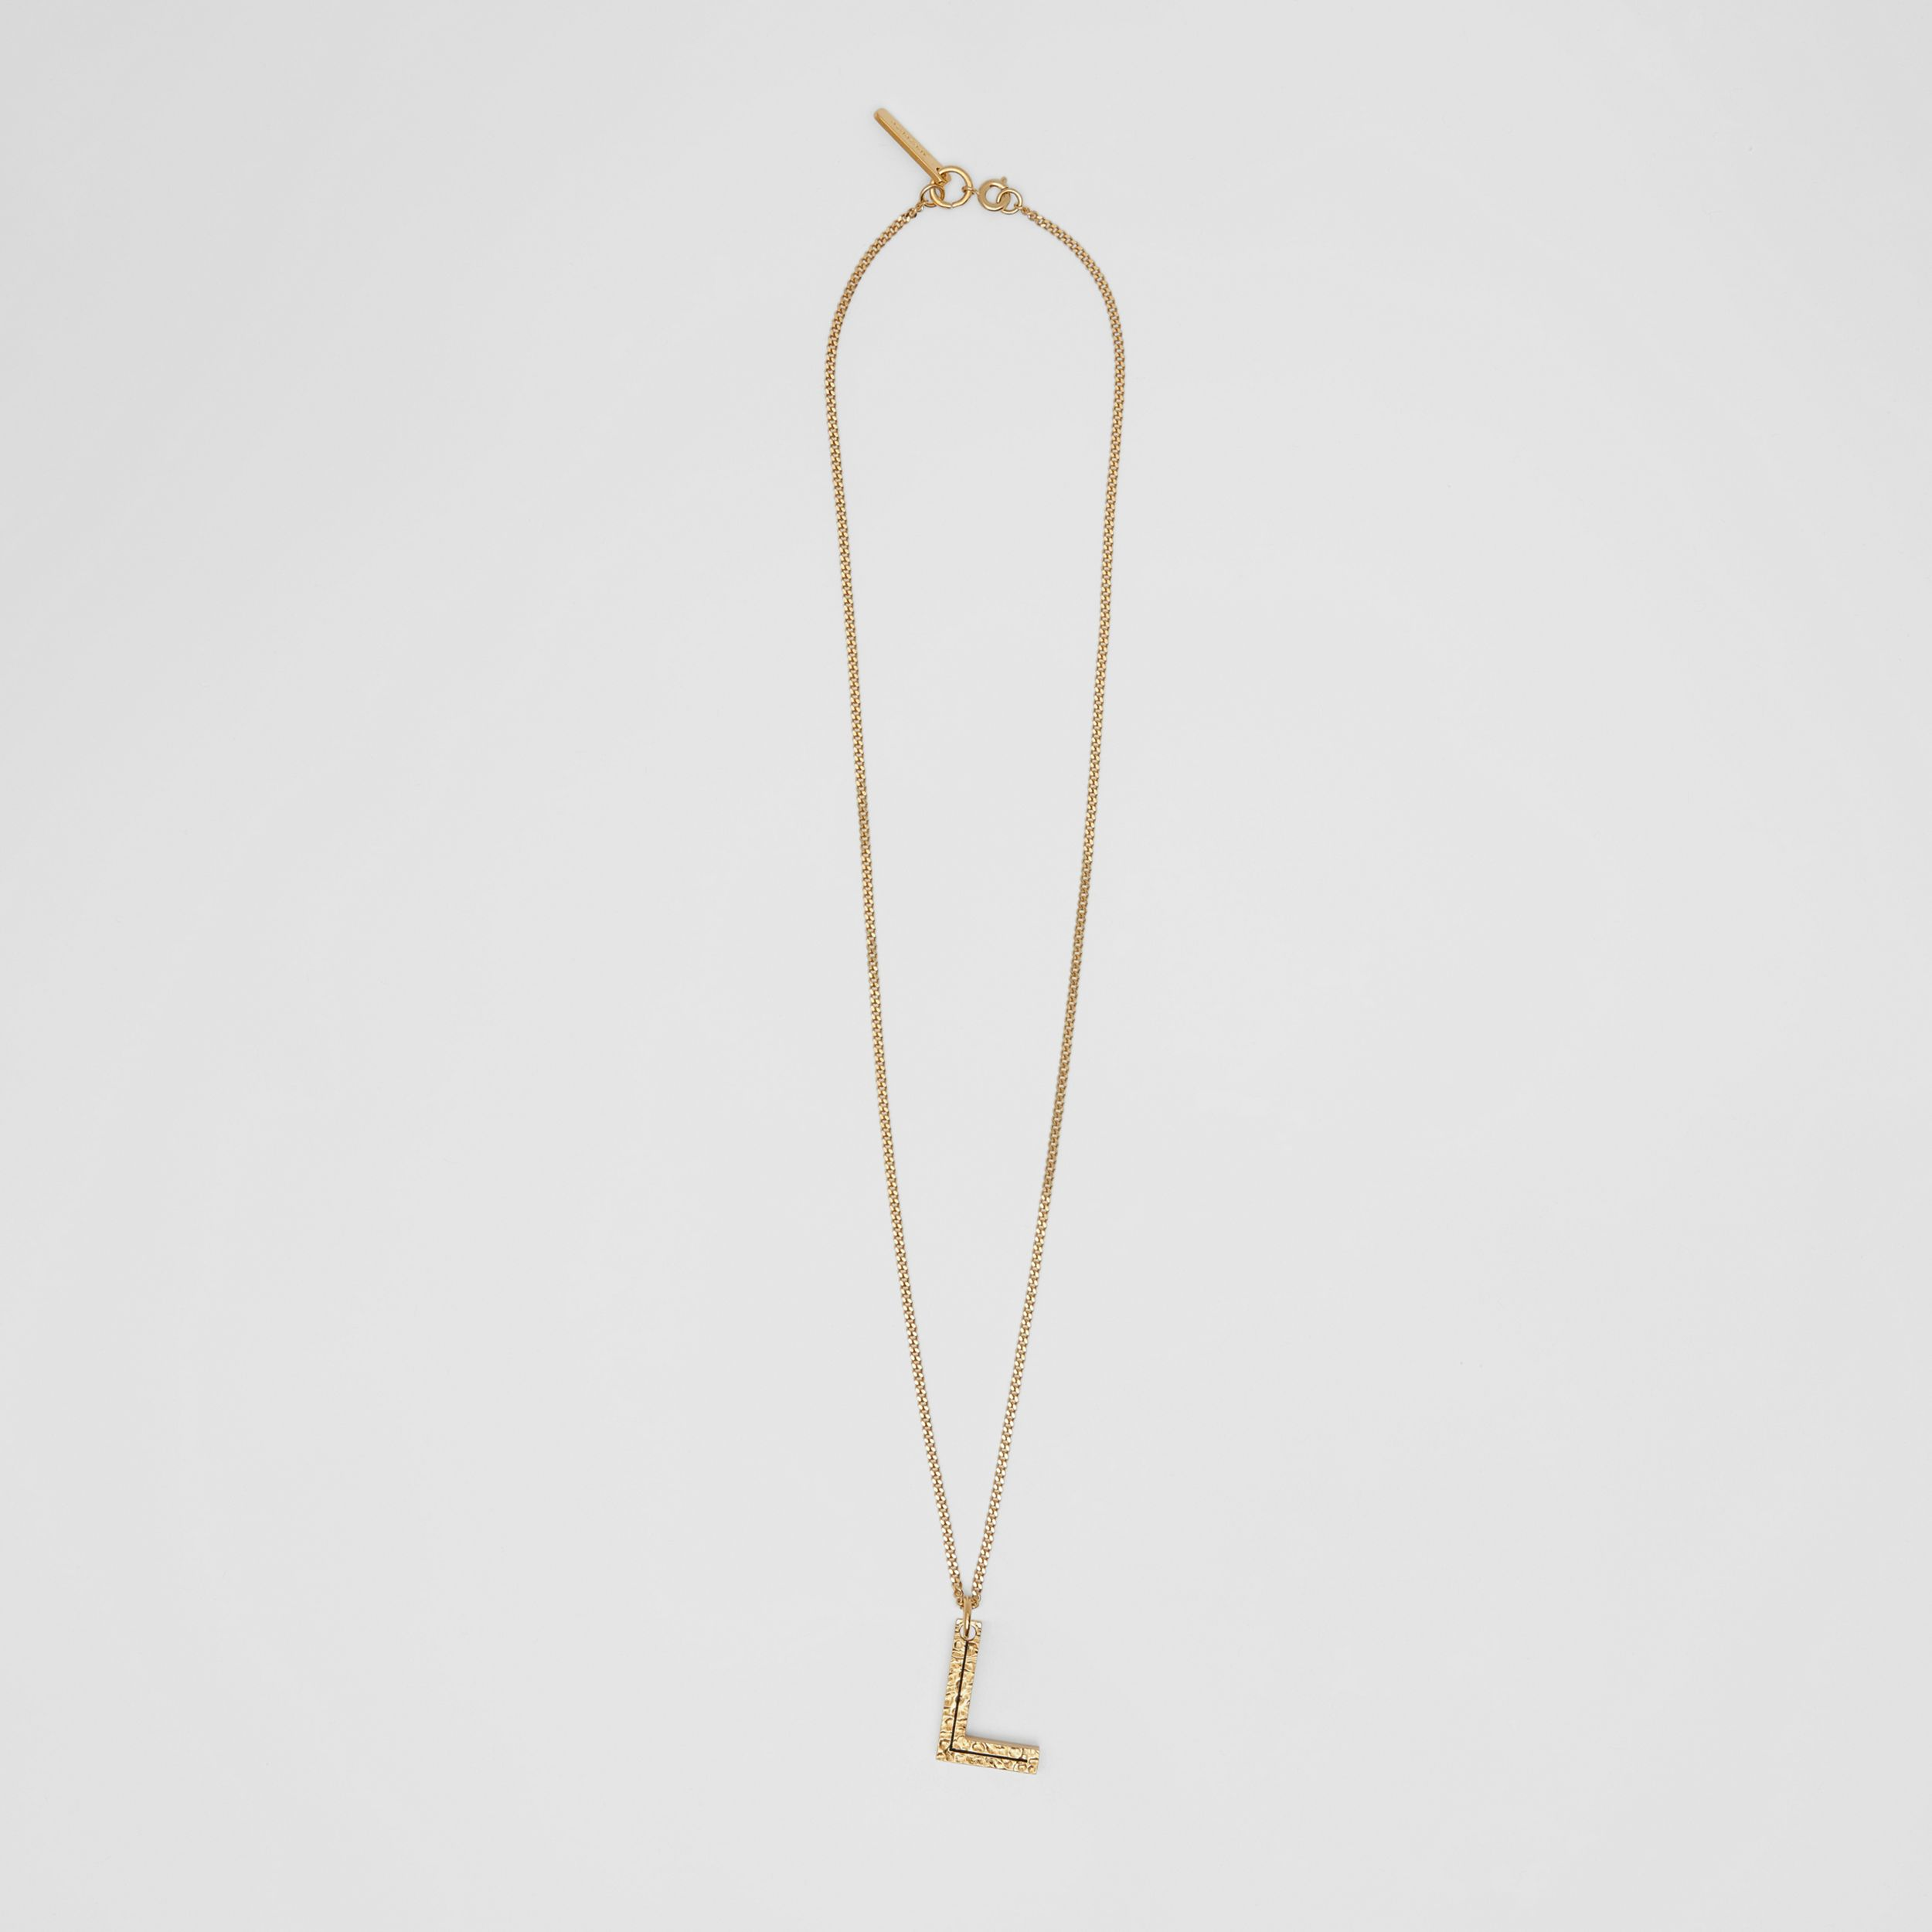 'L' Alphabet Charm Gold-plated Necklace in Light - Women | Burberry - 1